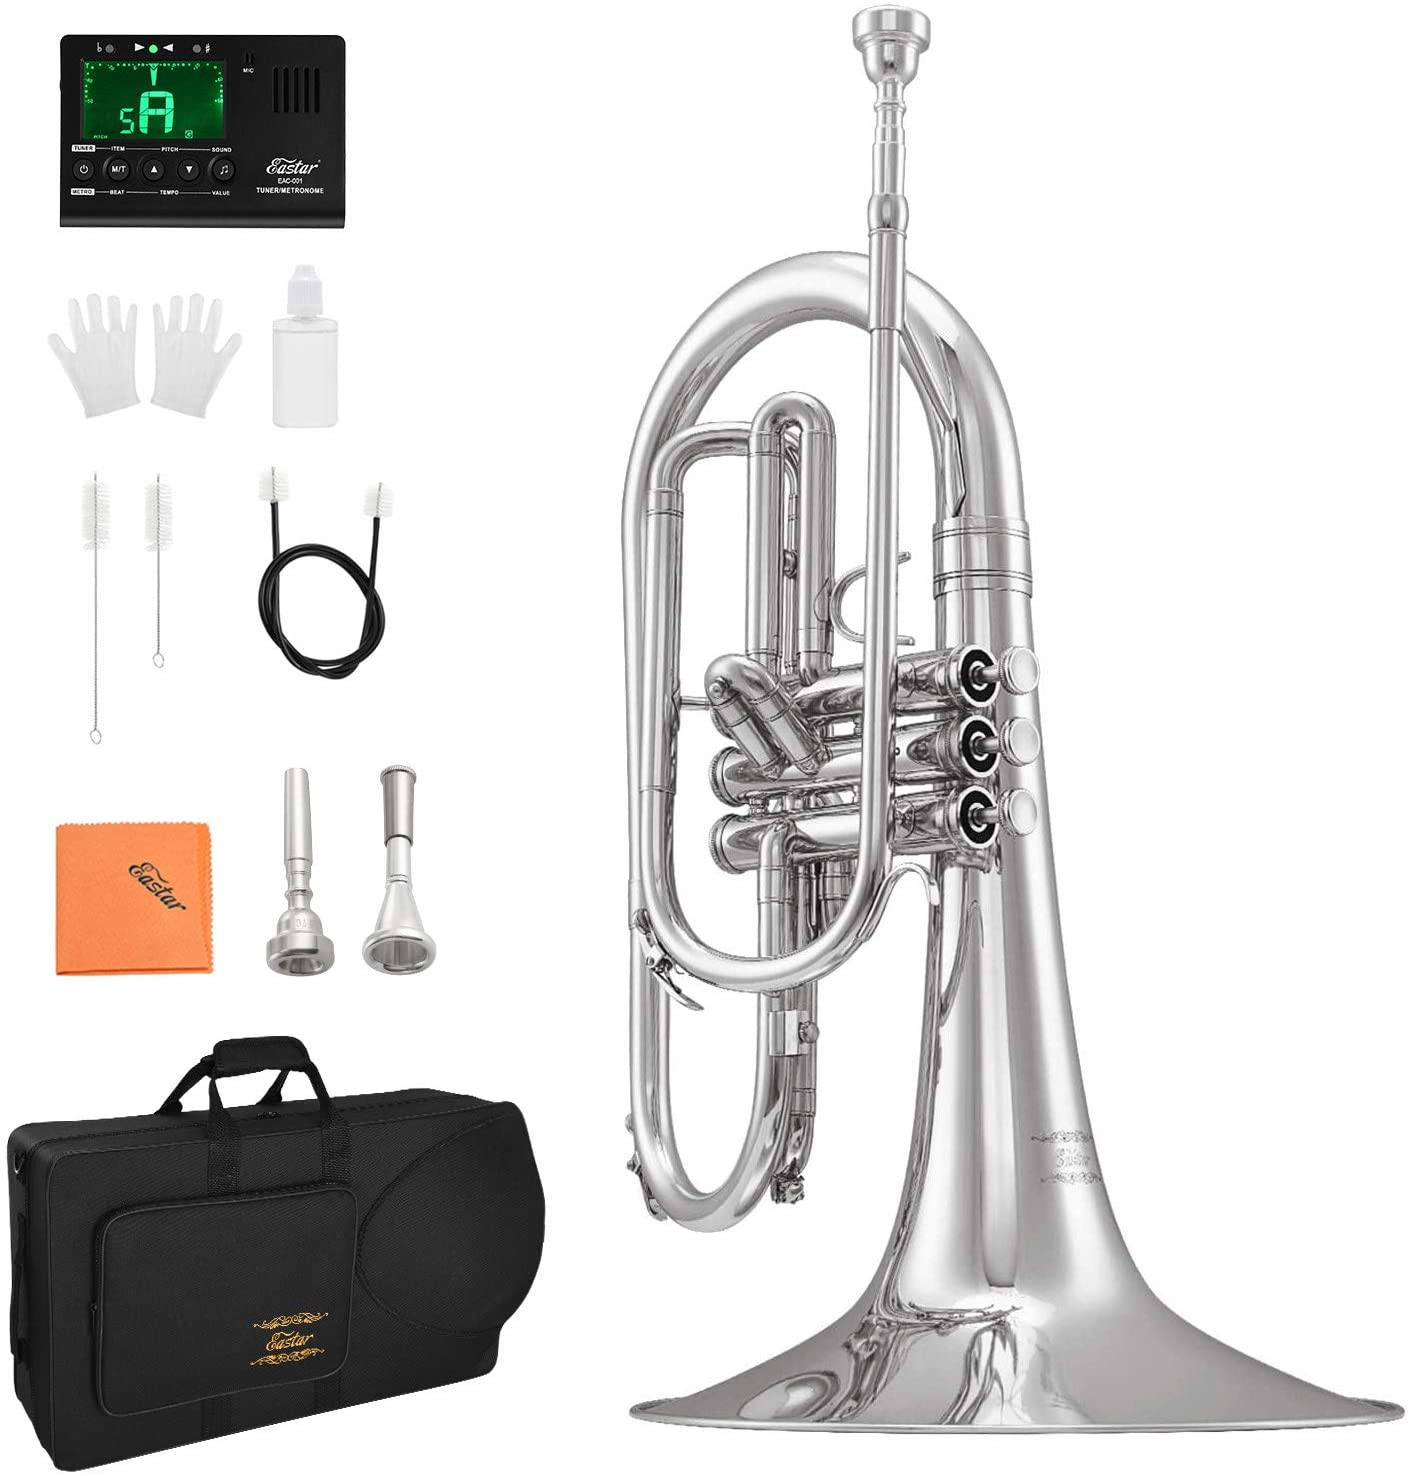 Eastar Mellophone Student Standard Marching Mellophone Key of F Nickel Plated with Hard Case Mouthpiece Gloves Oil Tuner Cleaning Kit, EMLP-380